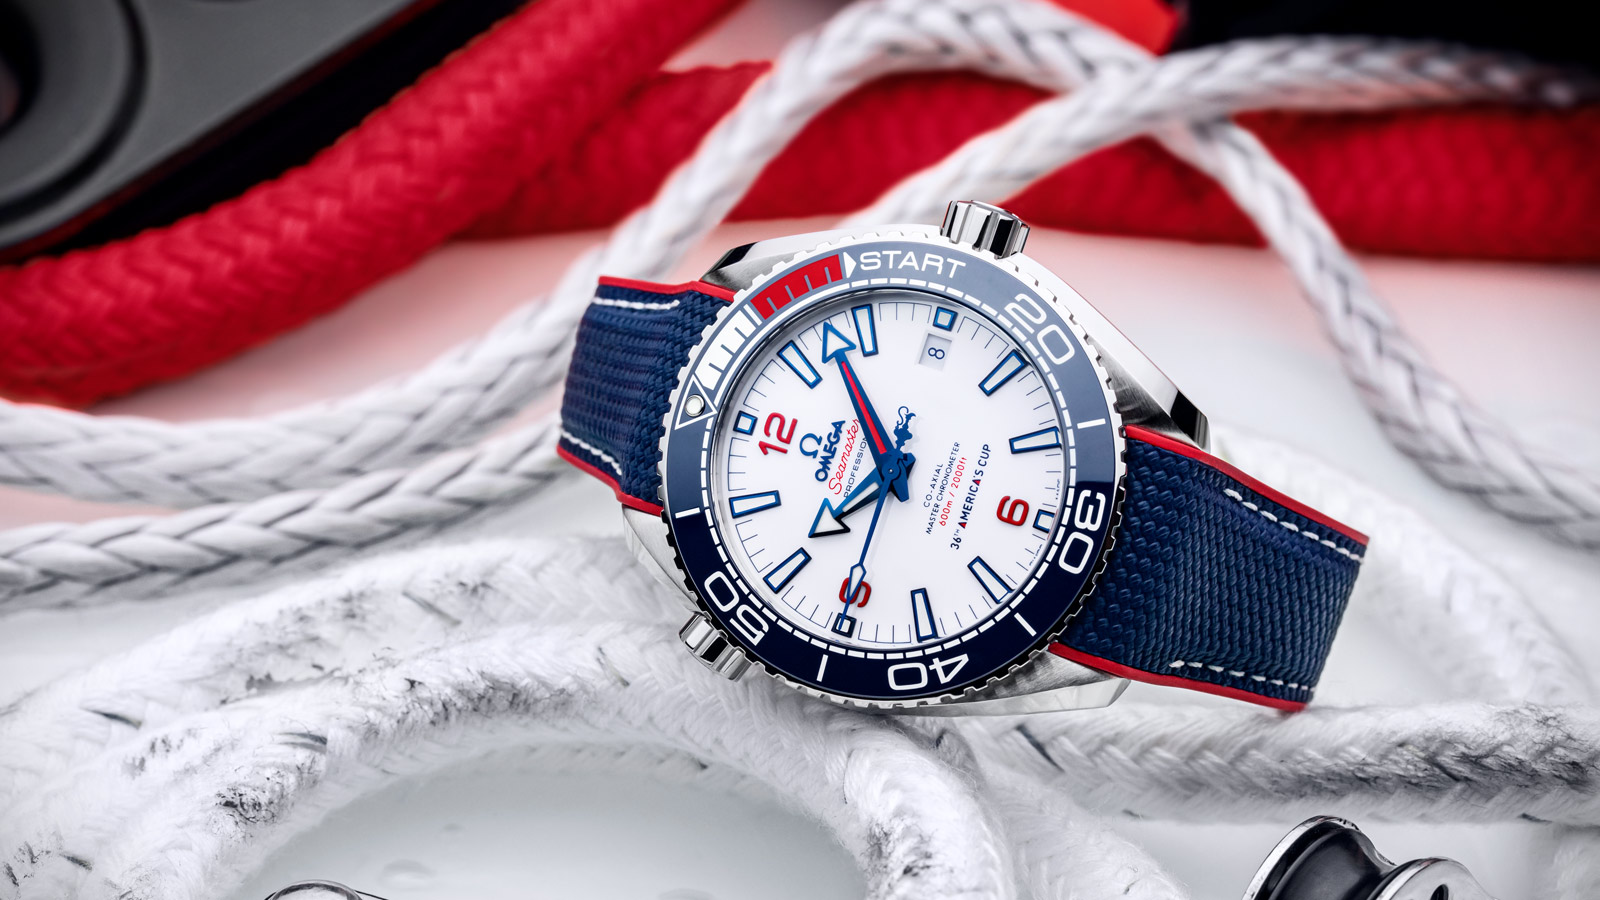 Seamaster Planet Ocean 600M America's Cup Edition - Слайд 1 - 89269